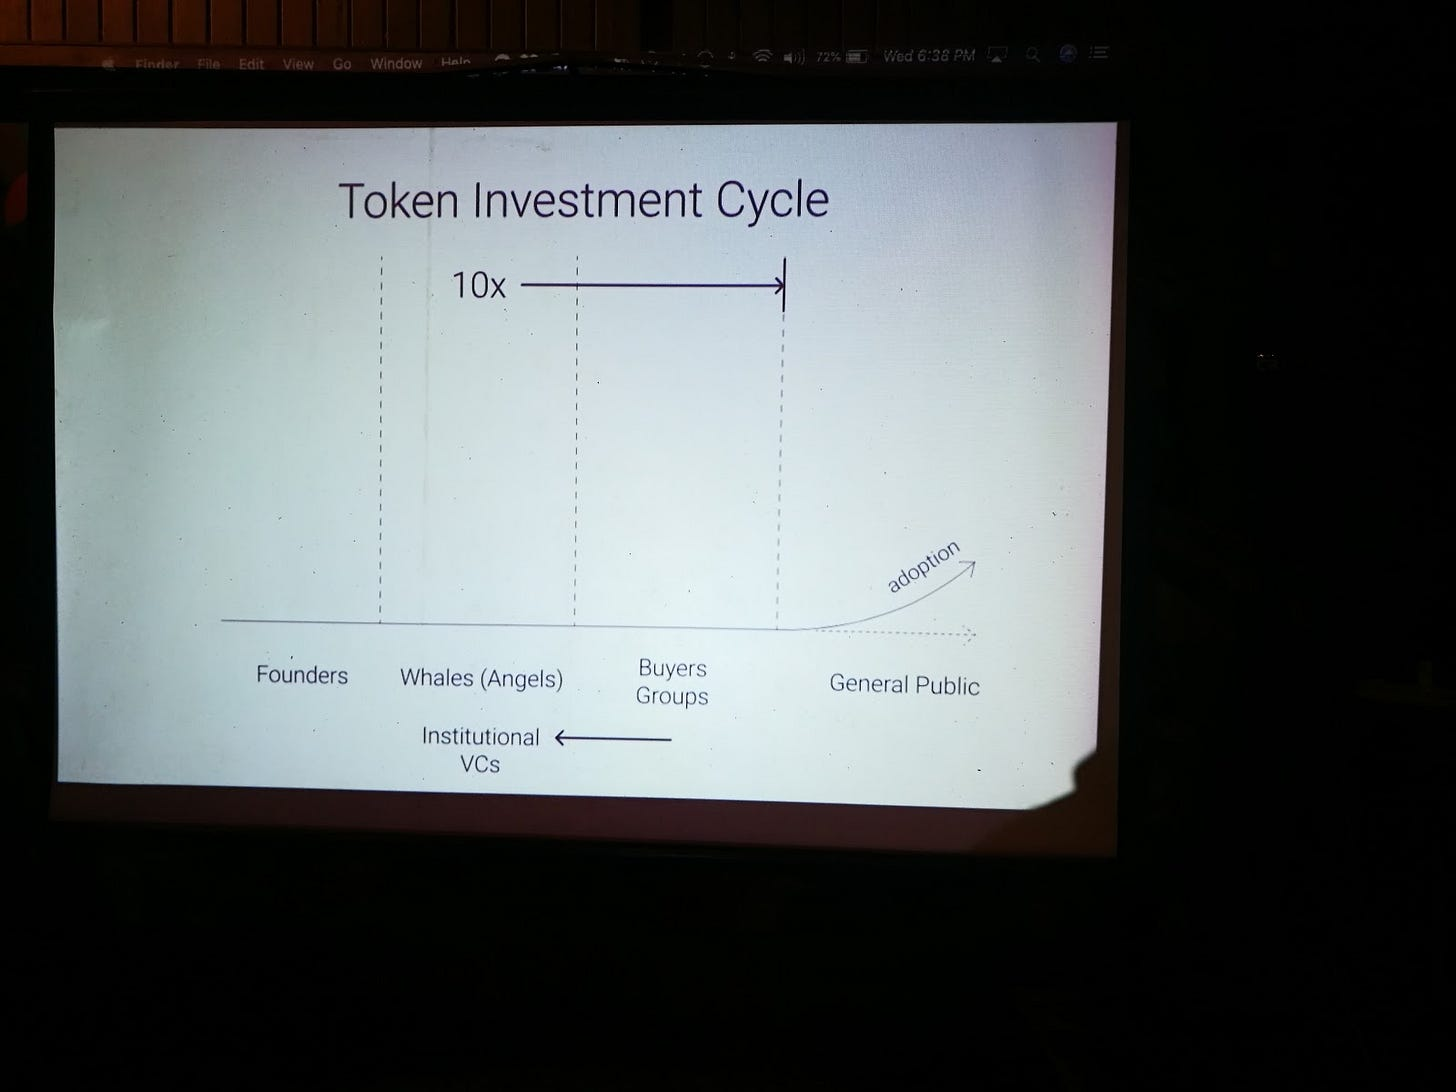 Token Investment Cycle